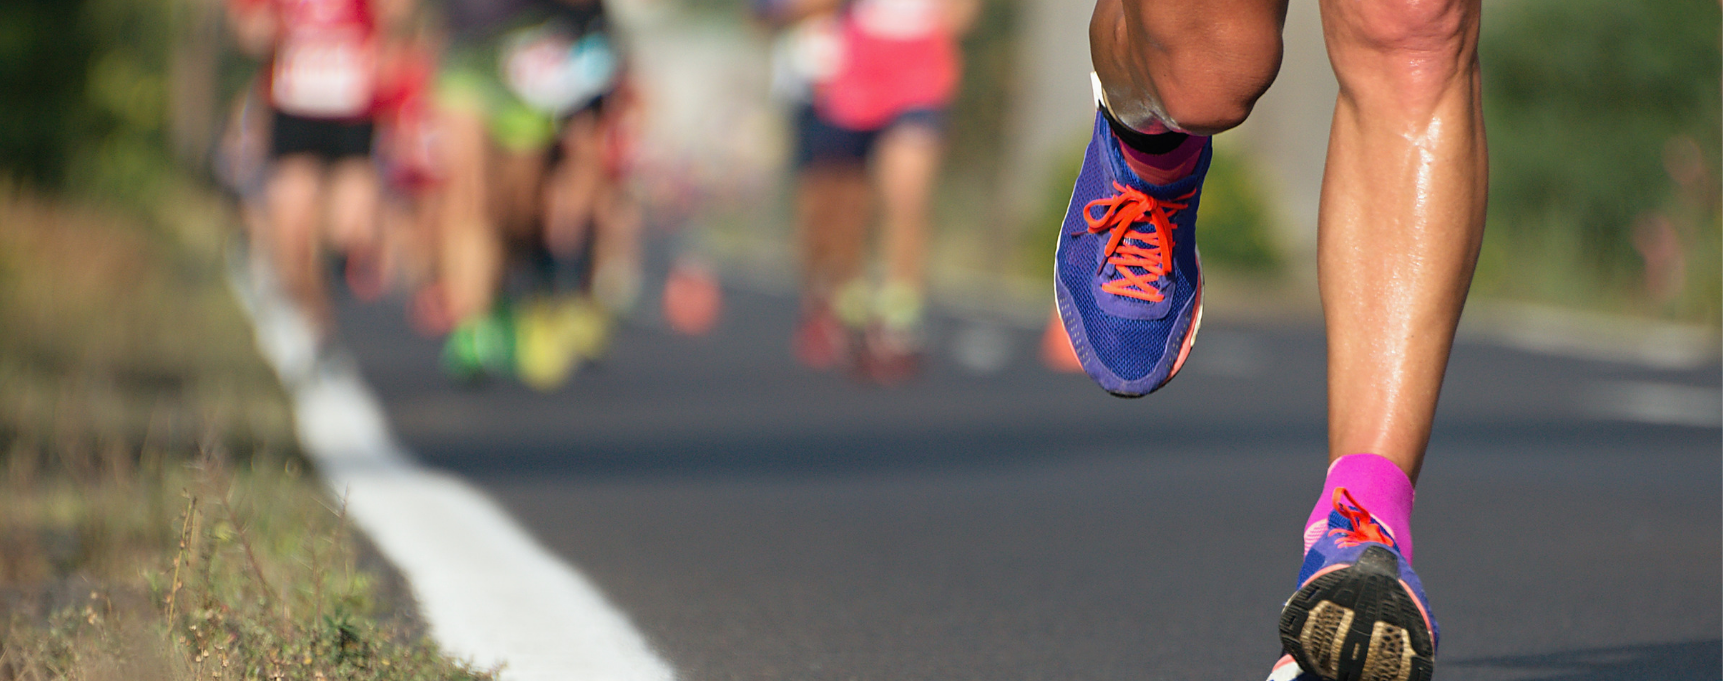 How to use mantras while running| Biofreeze SF Marathon